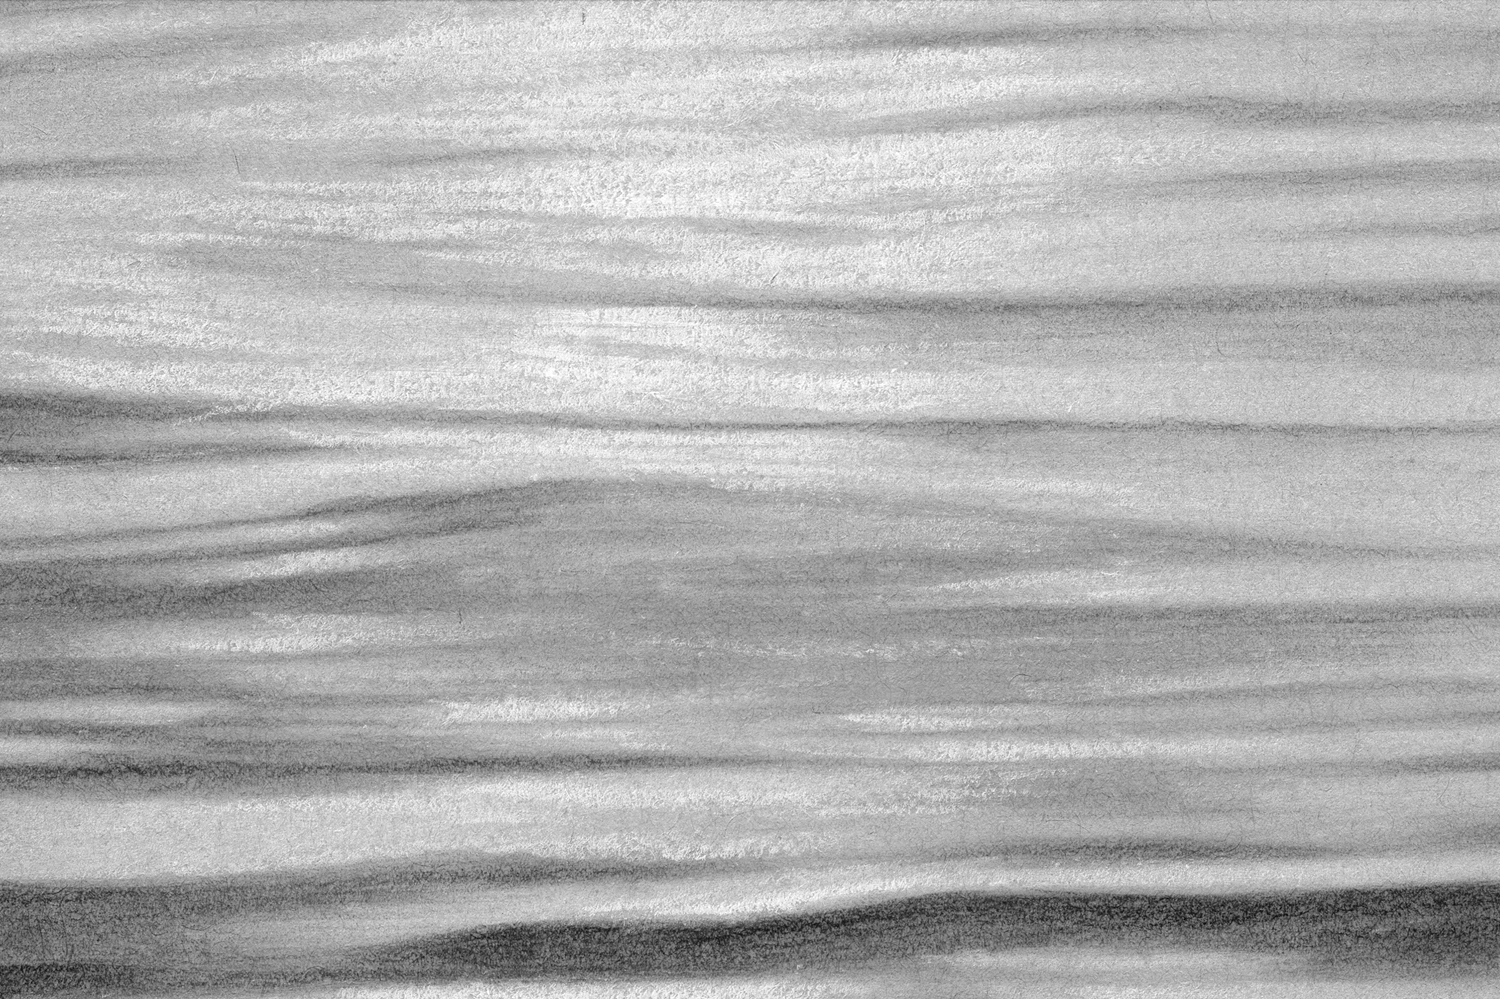 Sea-of-tranquility-detail